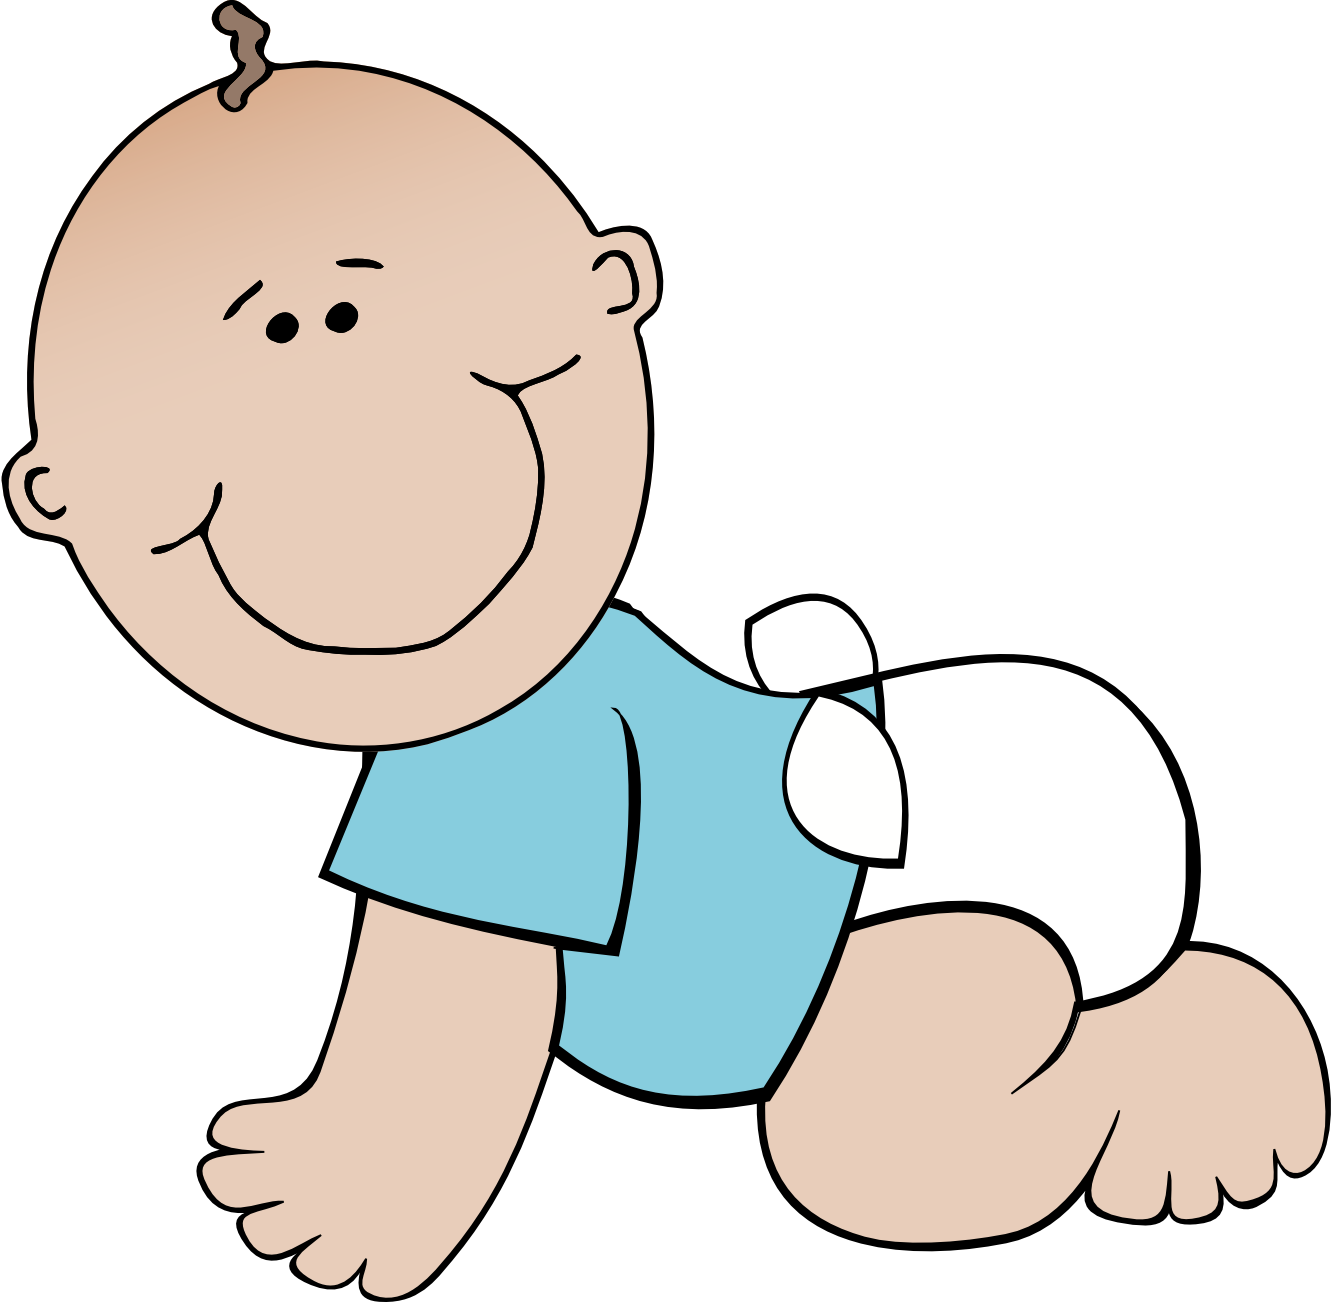 Dying clipart frustrated Clipart baby Baby Clipart Boy